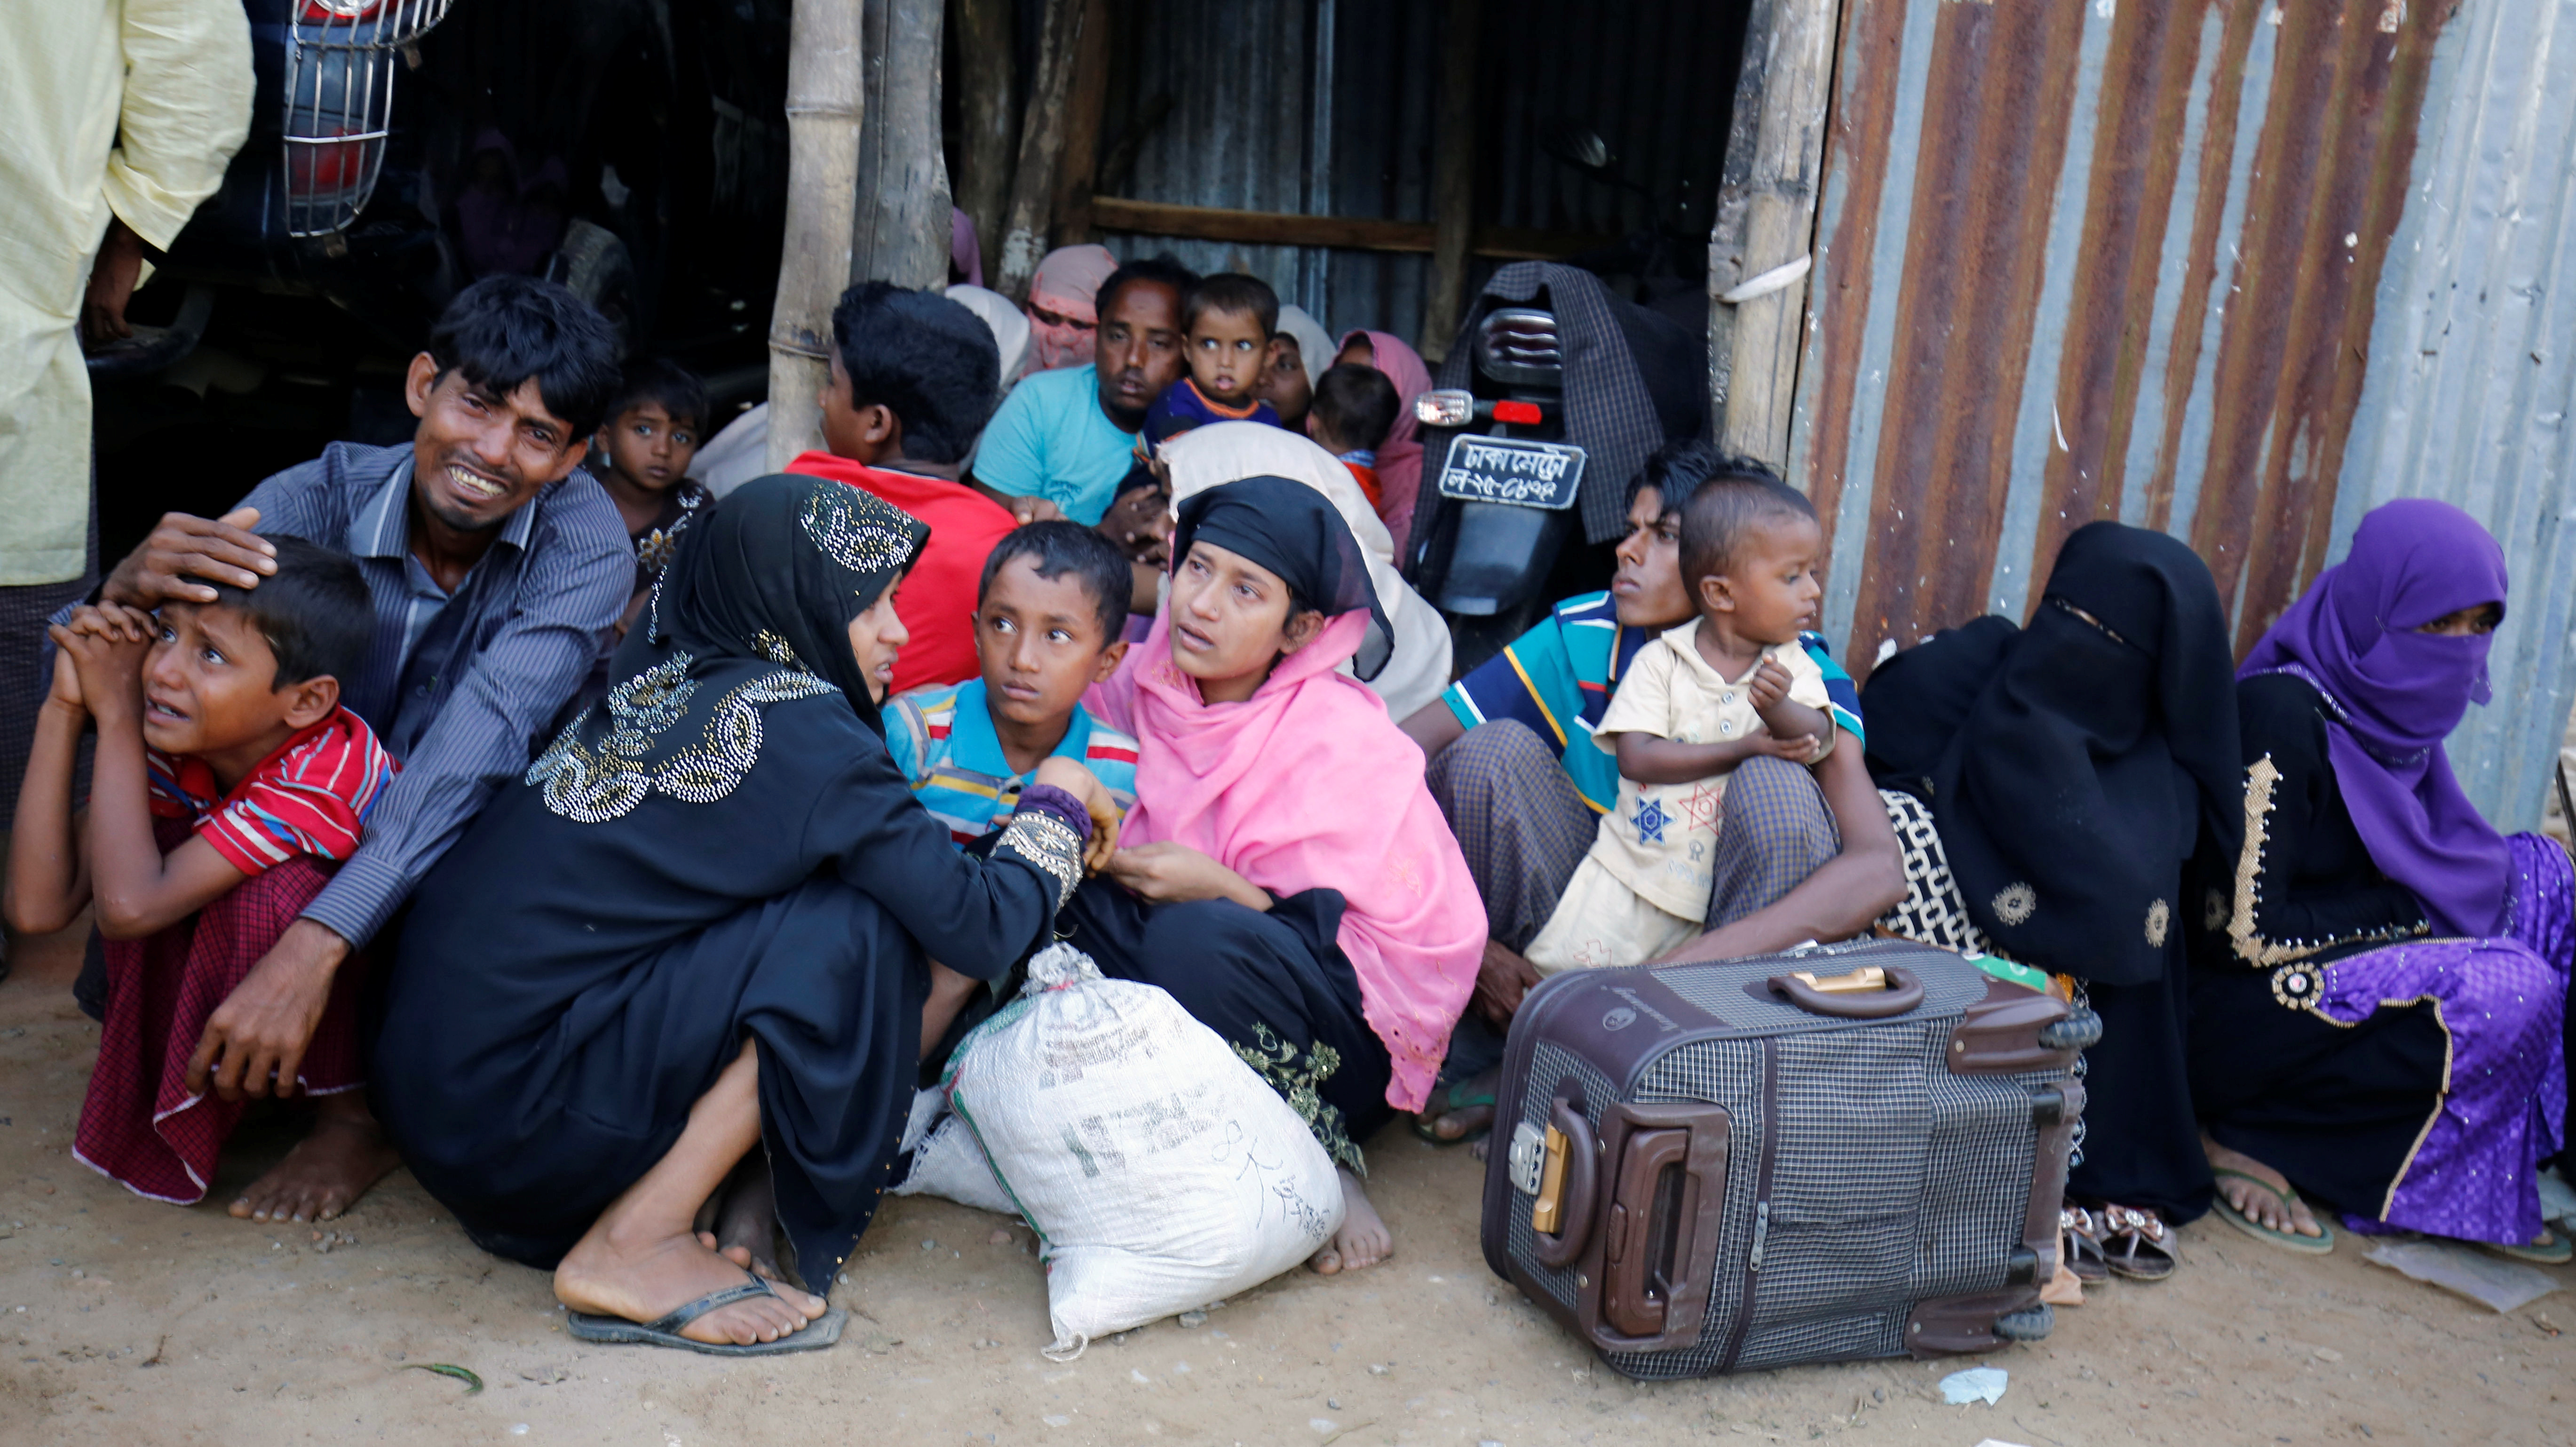 Asean Countries Should Find A Solution To End The Persecution Of Rohingya